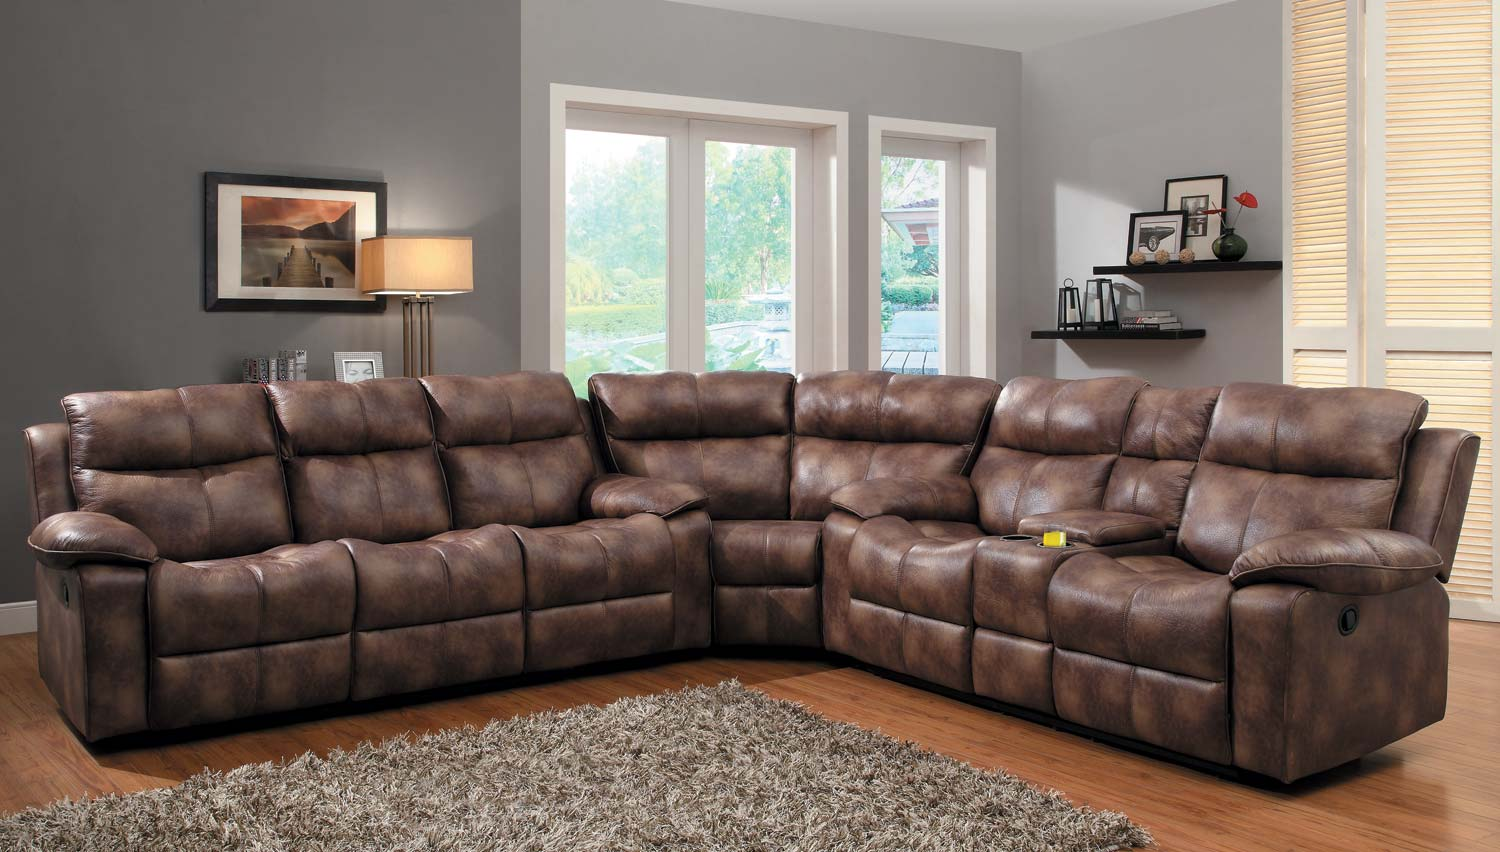 quality living room sectional couches and leather sofas online